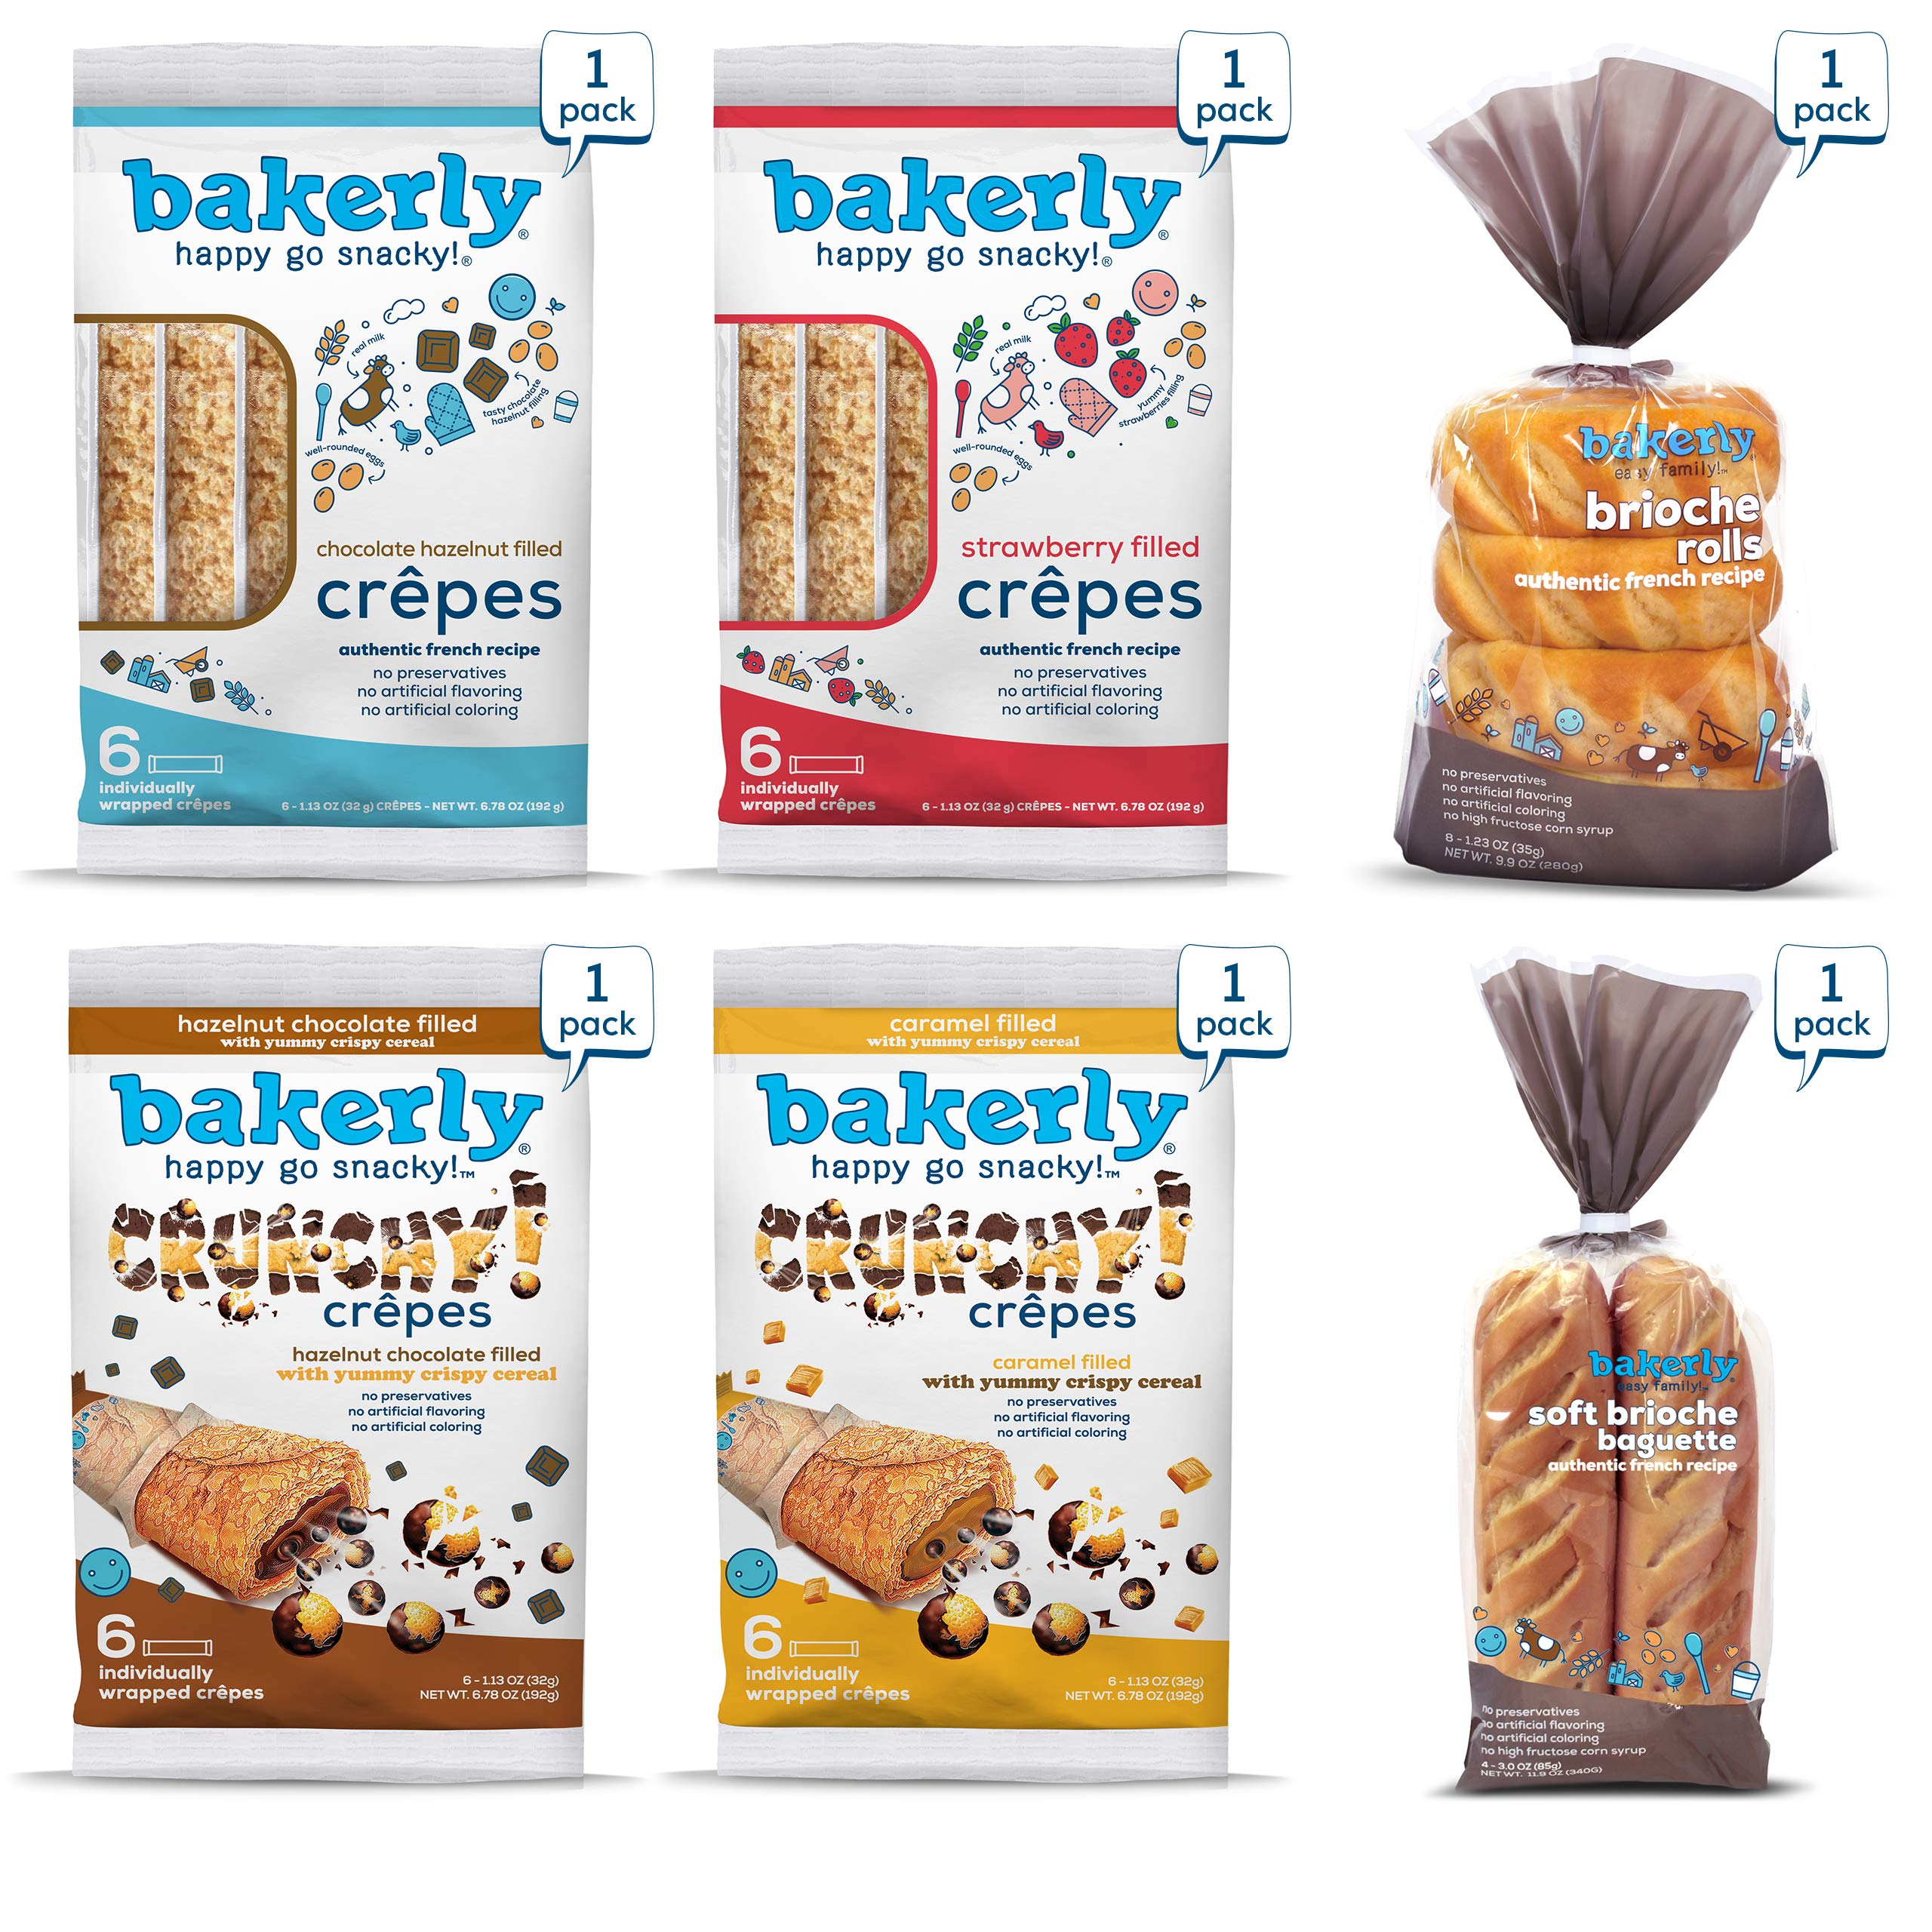 bakerly Filled Crepes & Brioches Variety Pack of 6 (24 Crepes + 4 Baguettes + 8 Brioche Rolls)